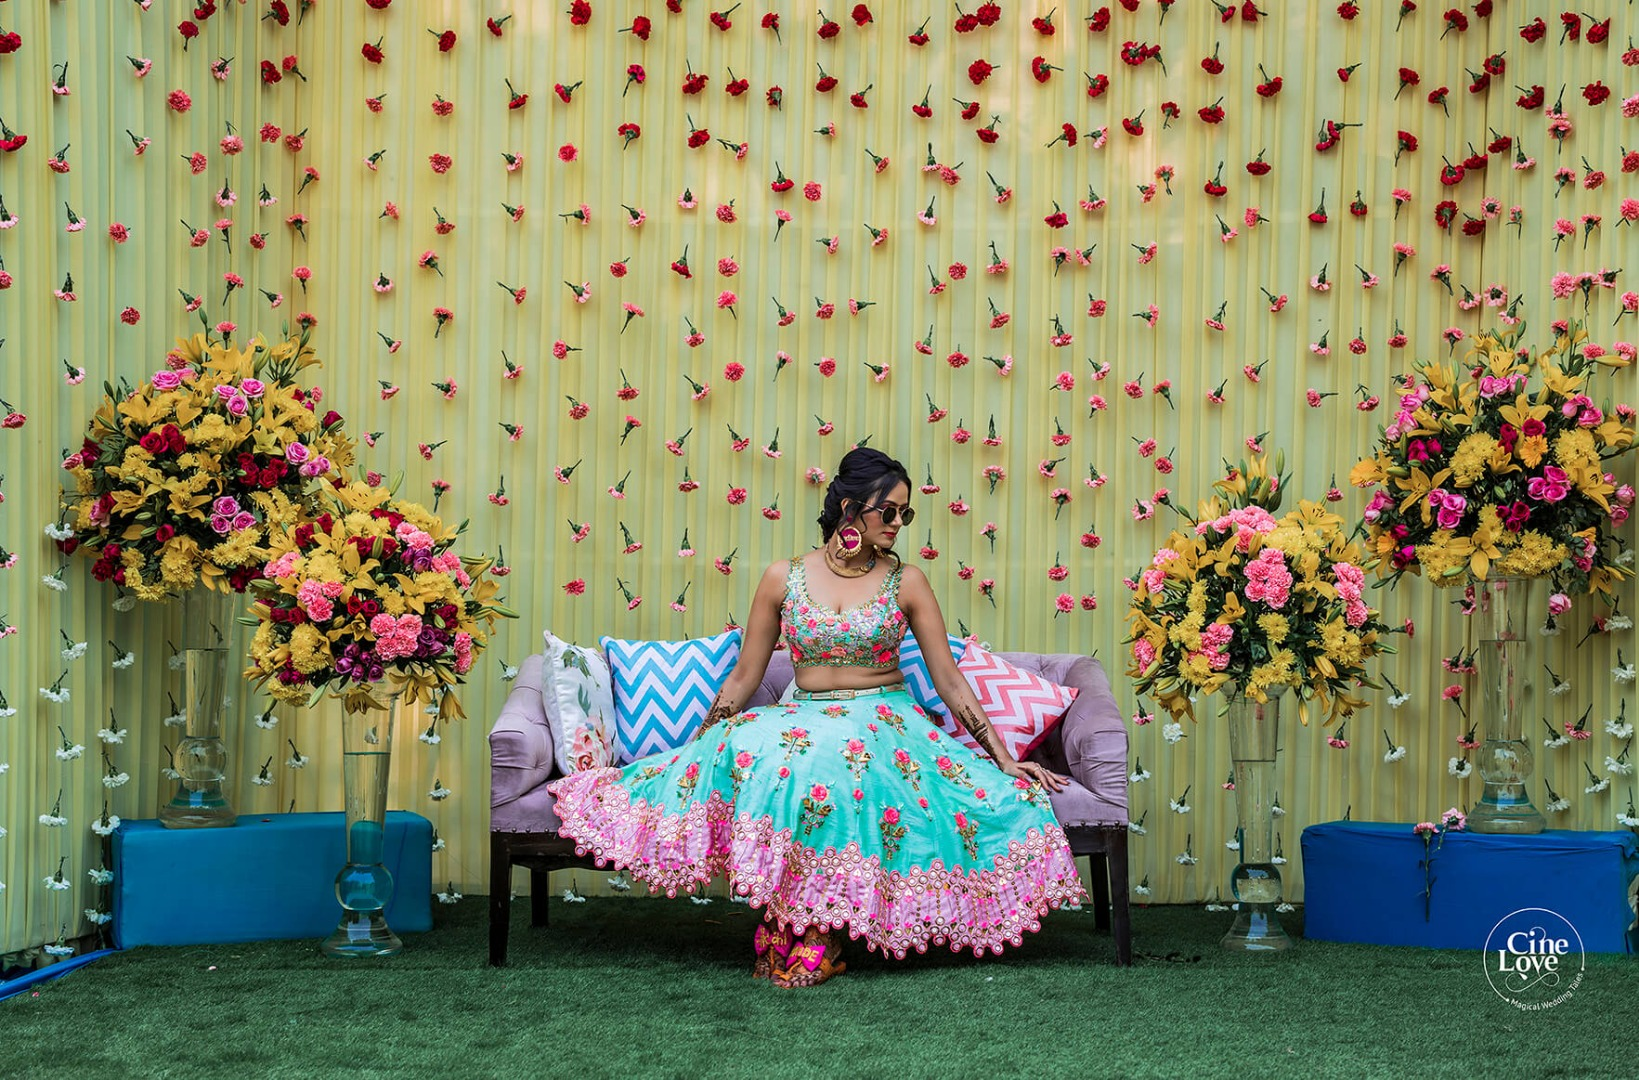 A Bride dressed in Turquoise & Pink with an Ombre Floral Mehendi Backdrop